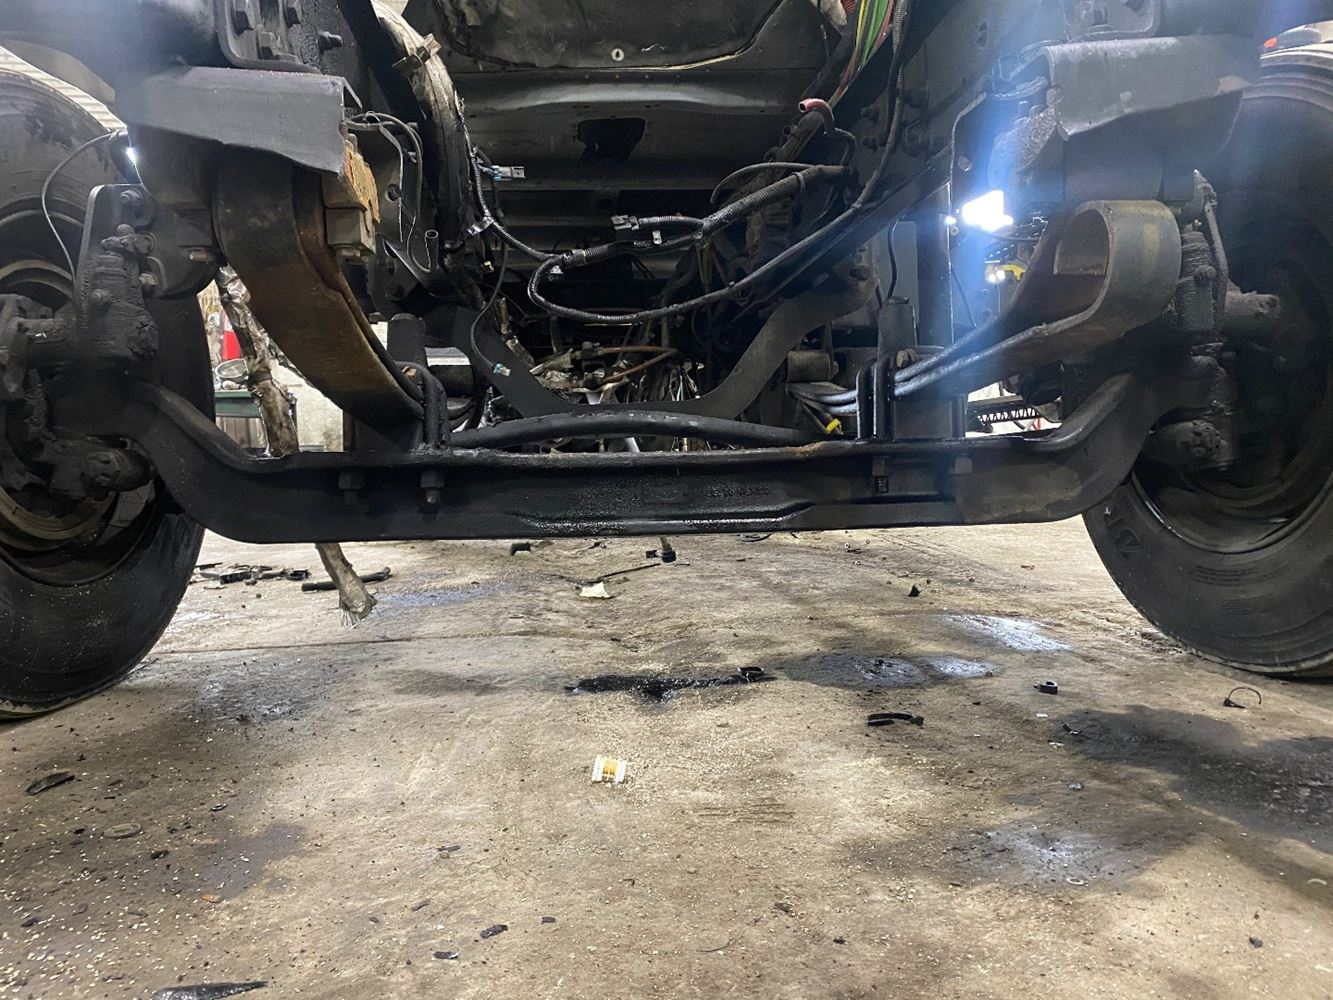 2013 FREIGHTLINER CASCADIA 125 FRONT AXLE TRUCK PARTS #707209